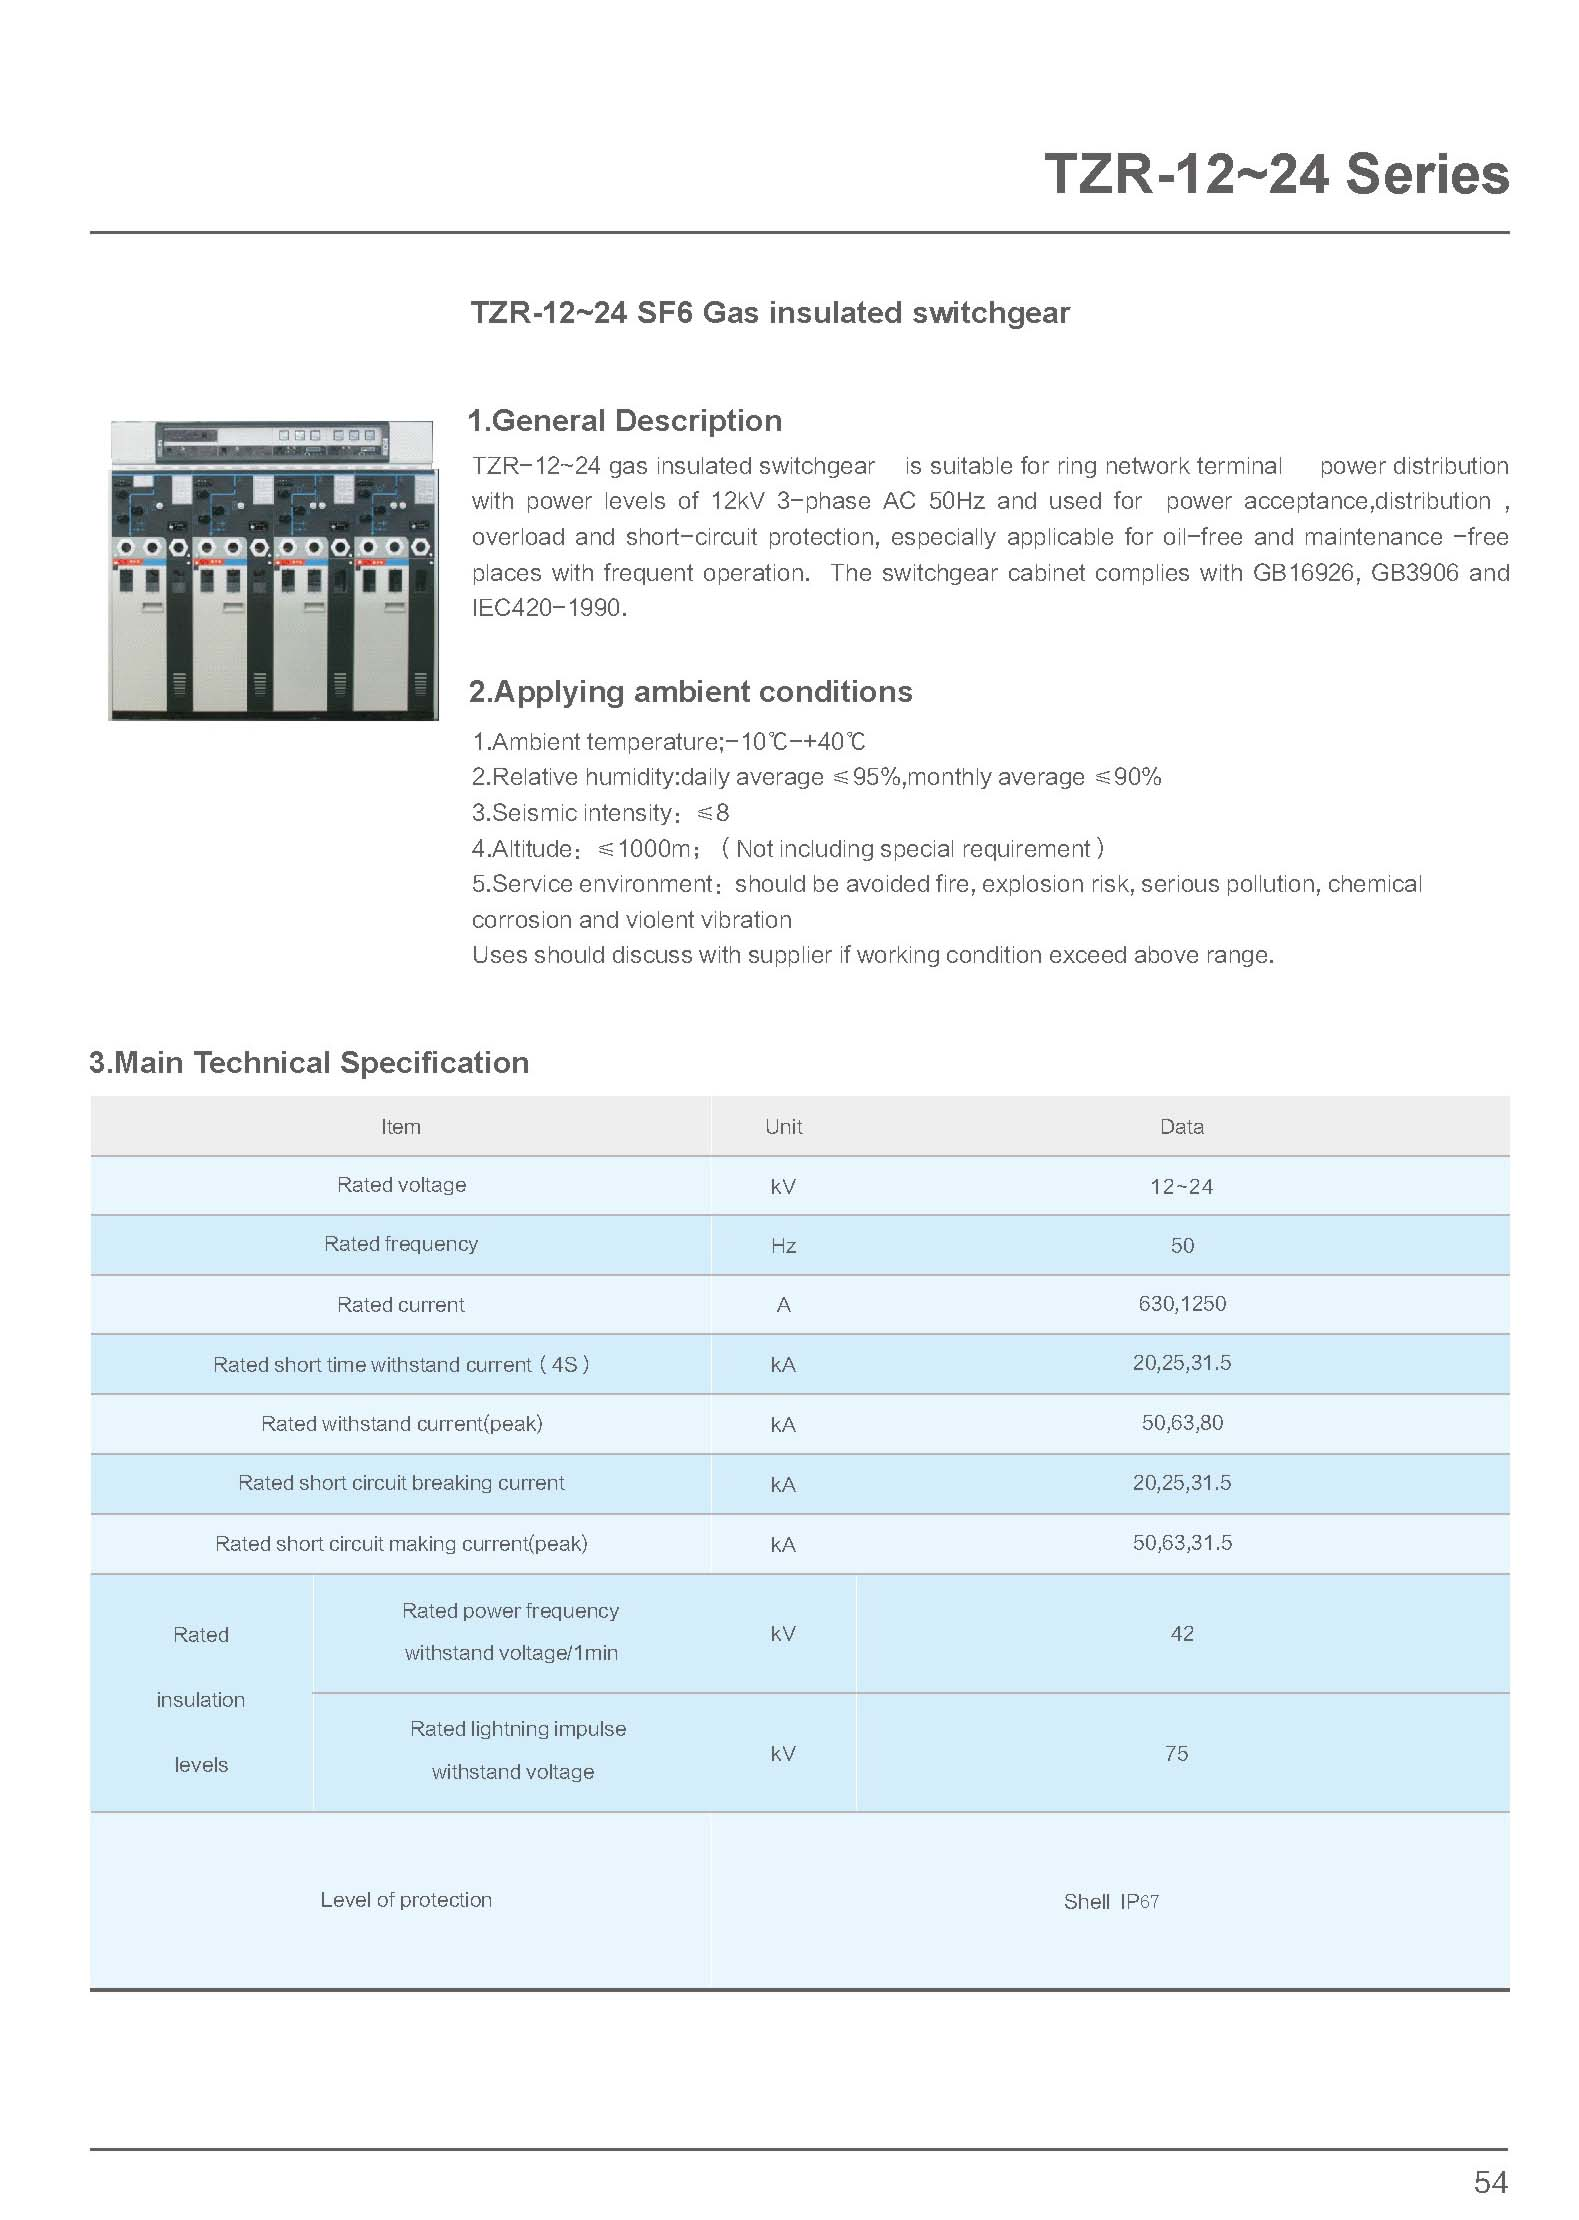 SF6 Gas Insulated Switchgear Technical Specification